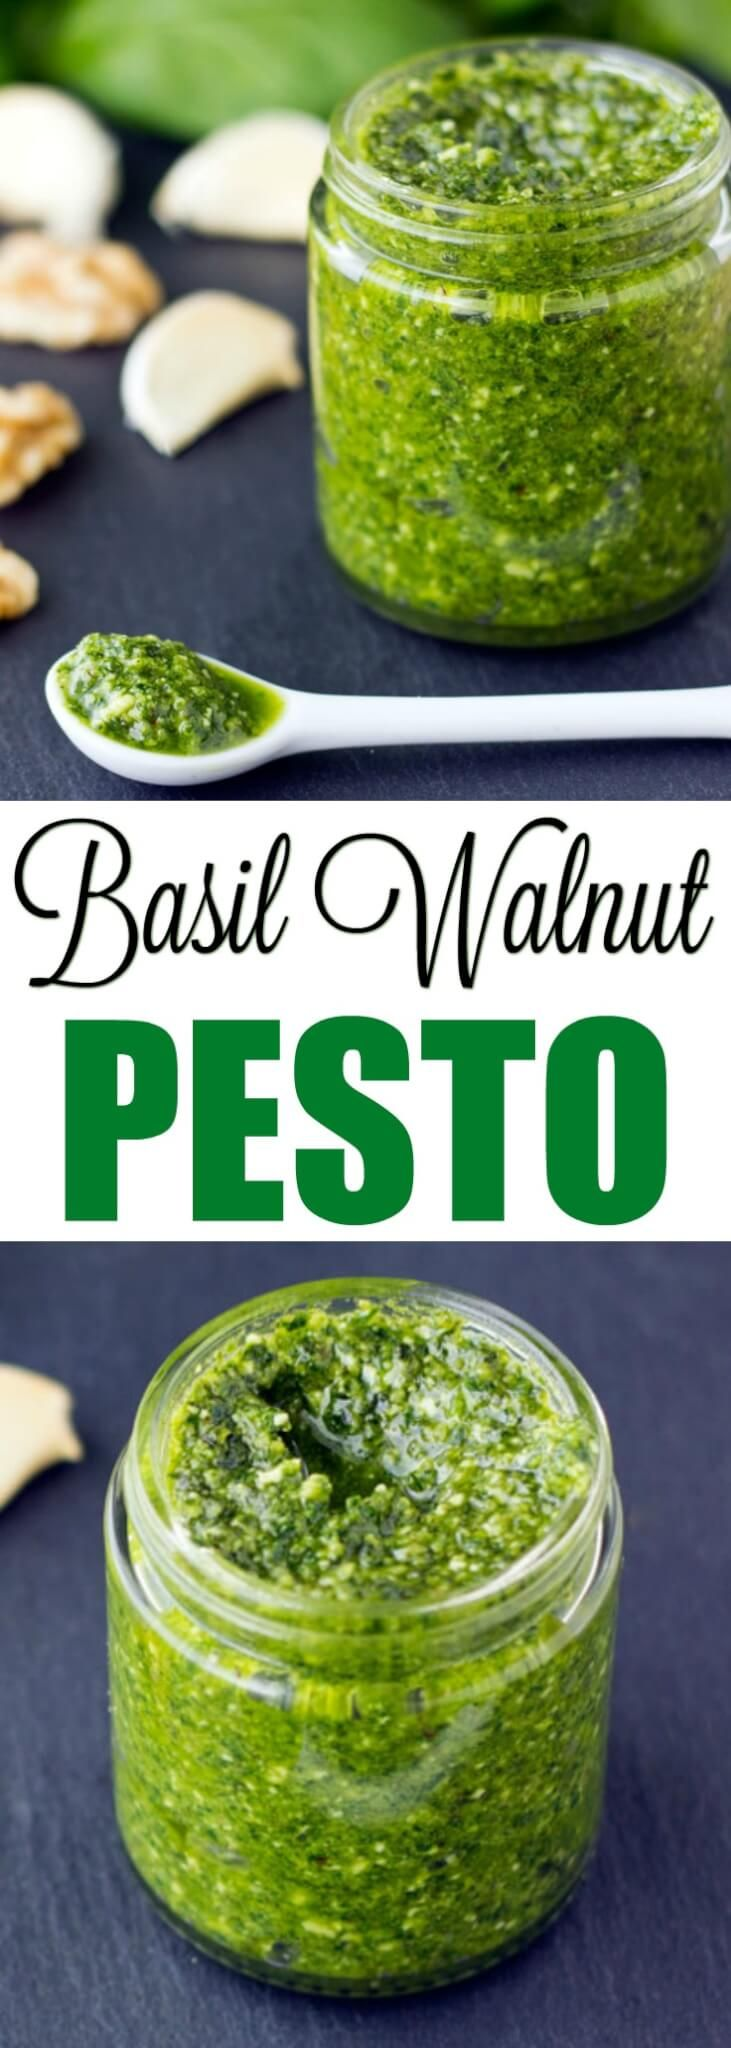 Basil Walnut Pesto comes together in about 15 minutes with just 6 ingredients. Great for pasta, sandwich spreads, and soup garnishing!